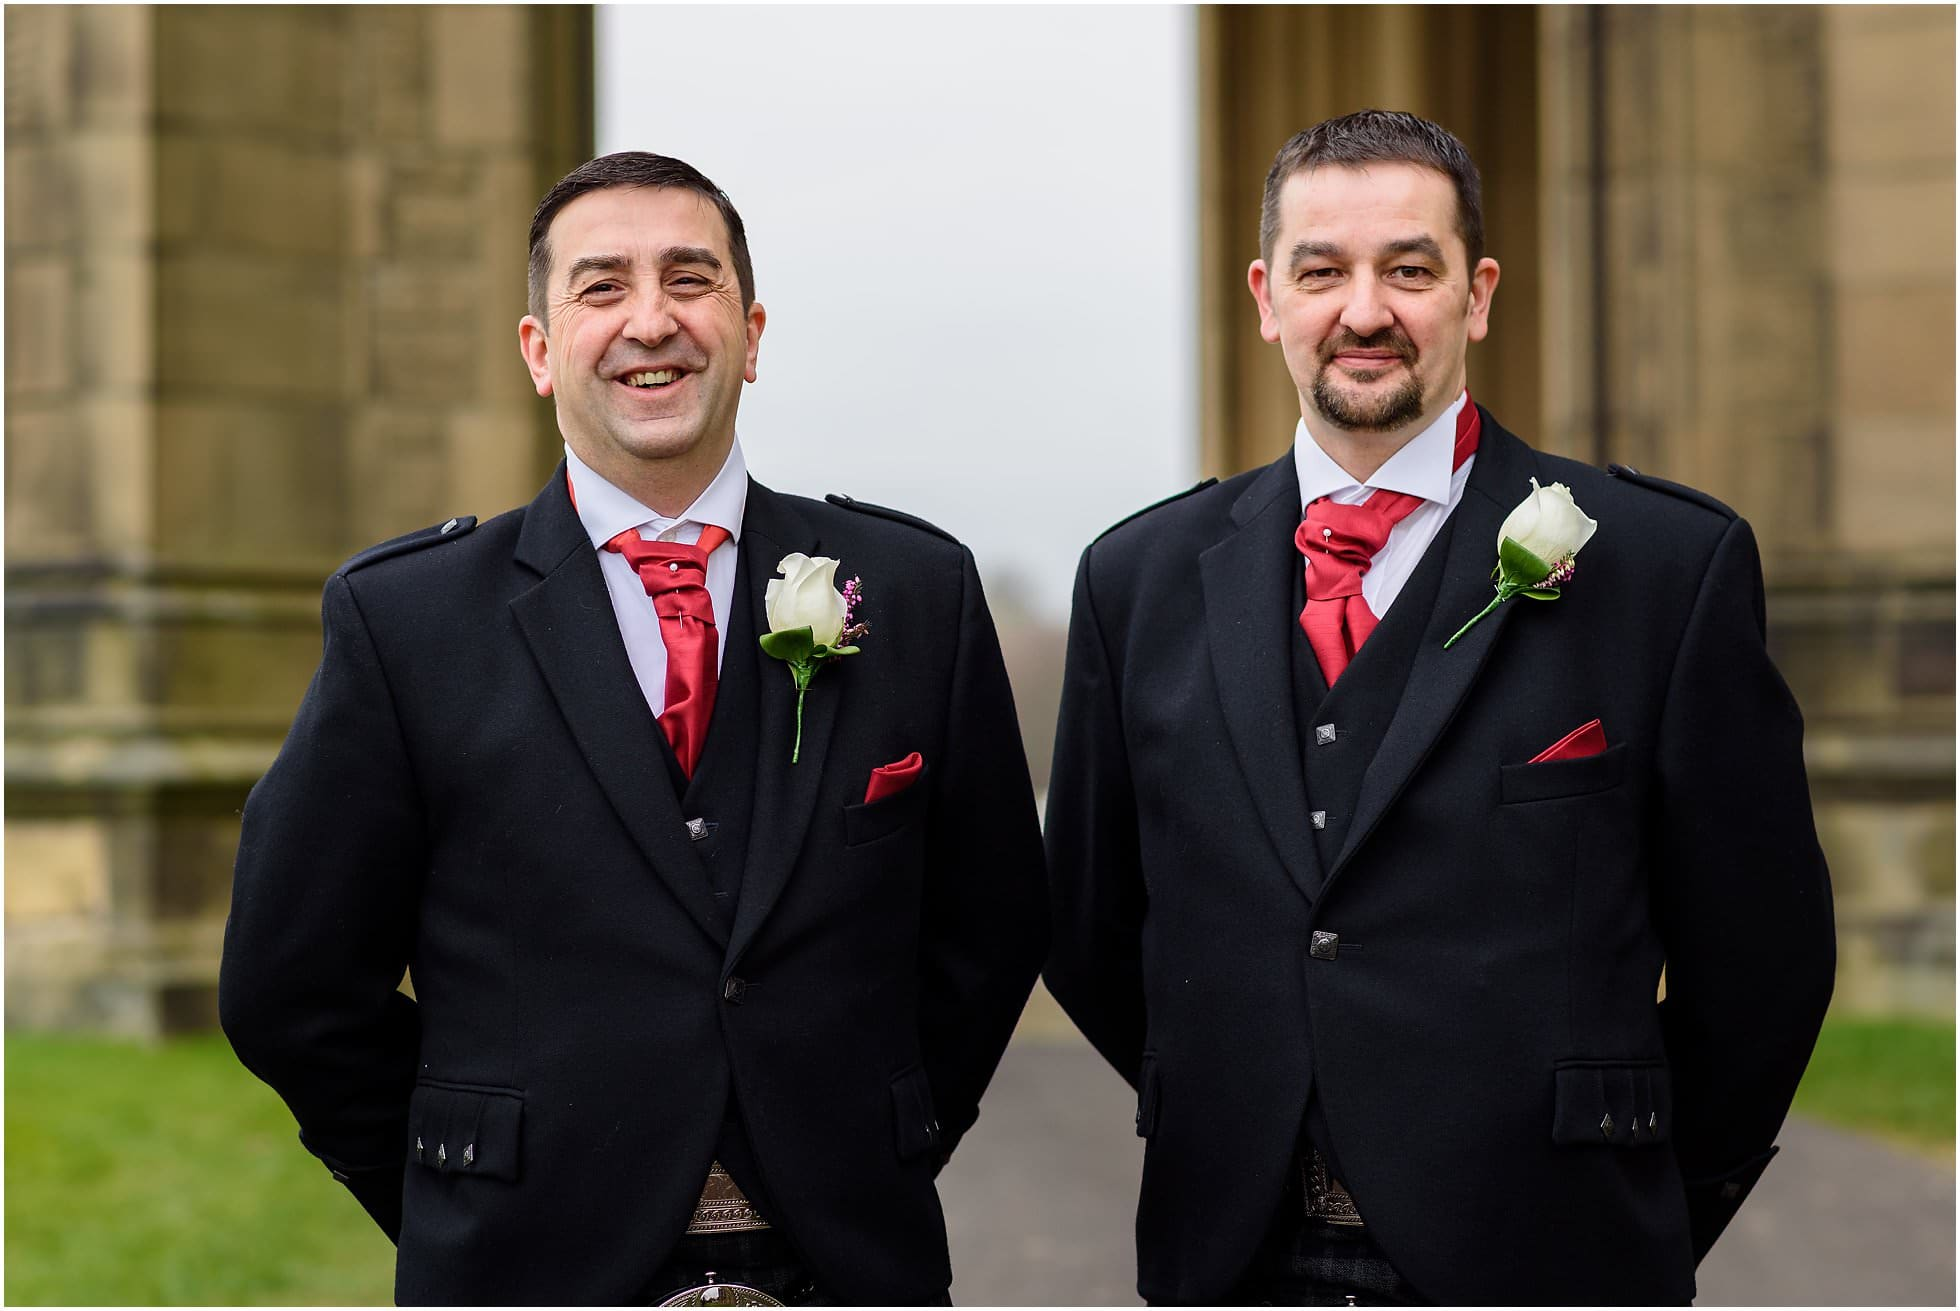 Groom and best man on arrival